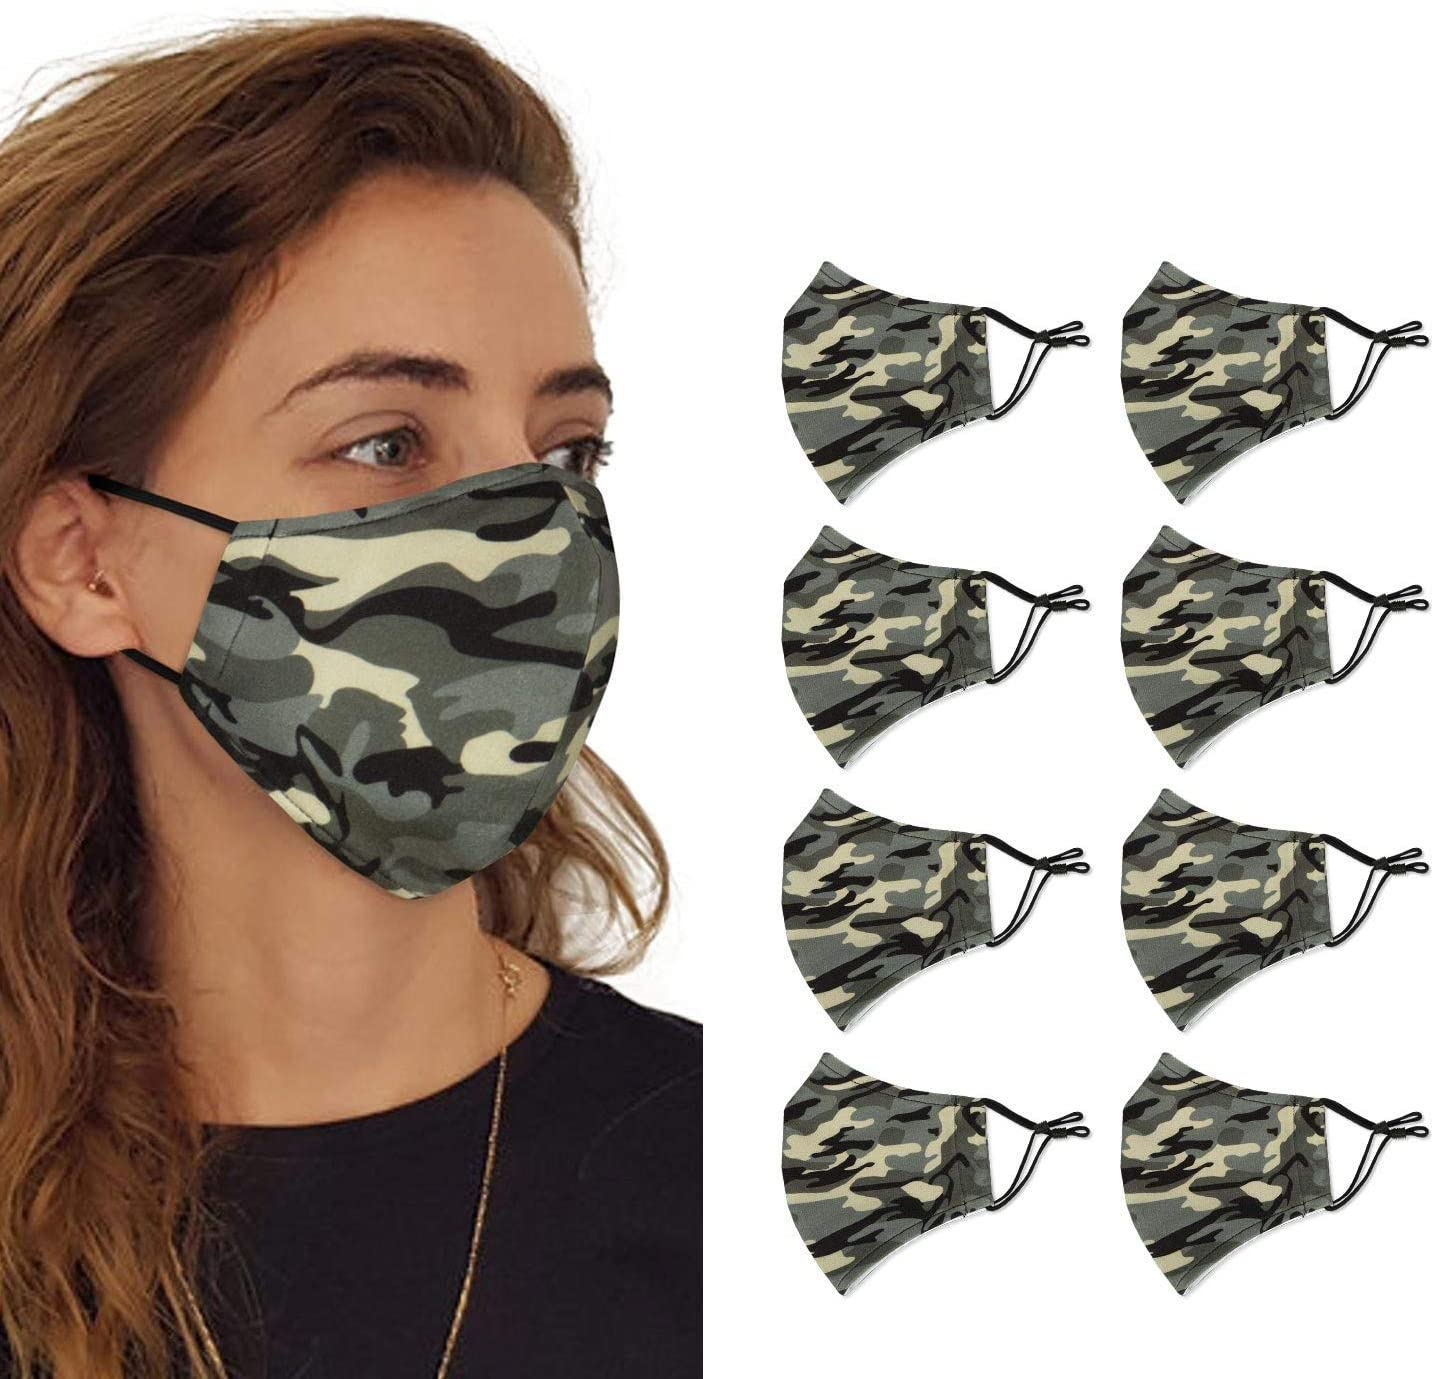 Reusable Washable Cloth Protection Fashion Fabric Face Mask,2 Layer Cotton Face Mask Adjustable Elastic Ear Loops,Unisex Adult Mask with Filter Pocket (Camo,8 Pack)